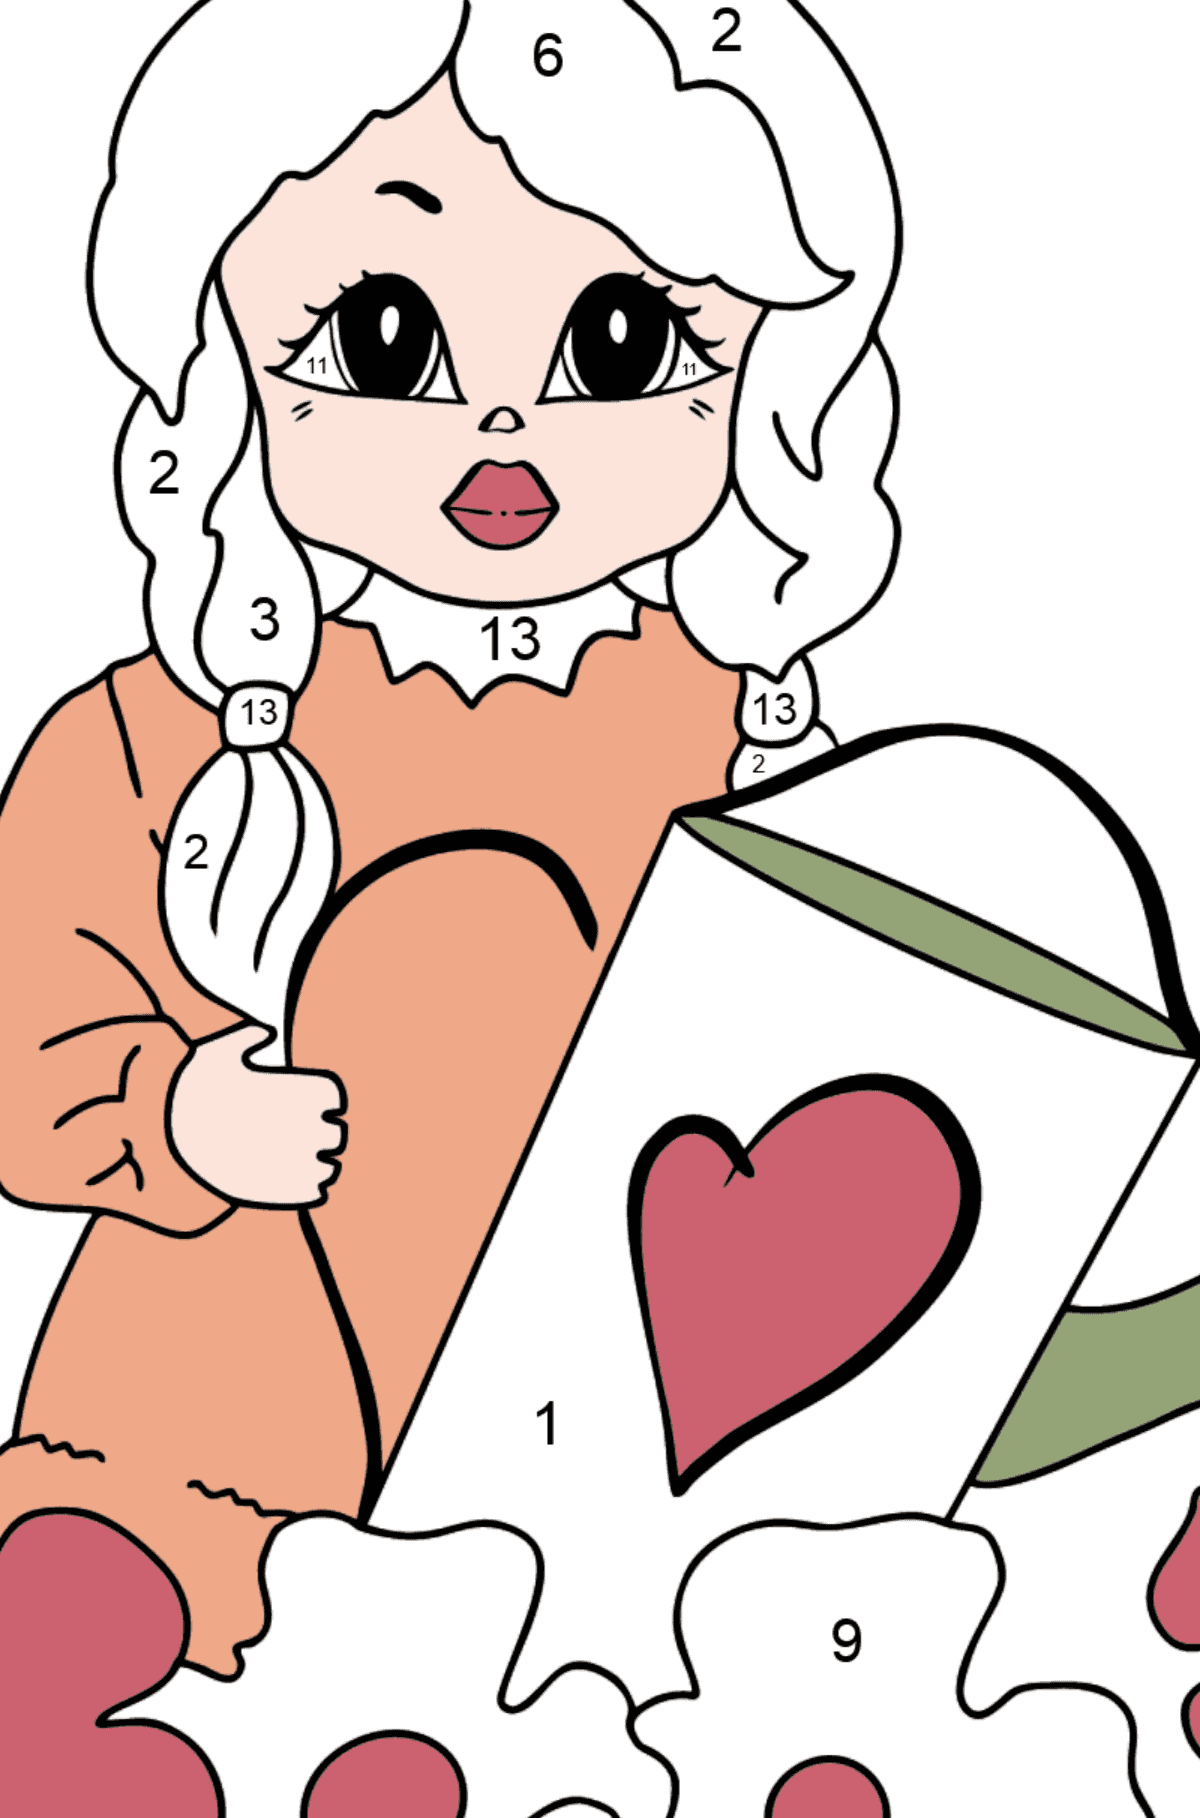 Coloring Page - A Princess with a Watering Can - Coloring by Numbers for Kids